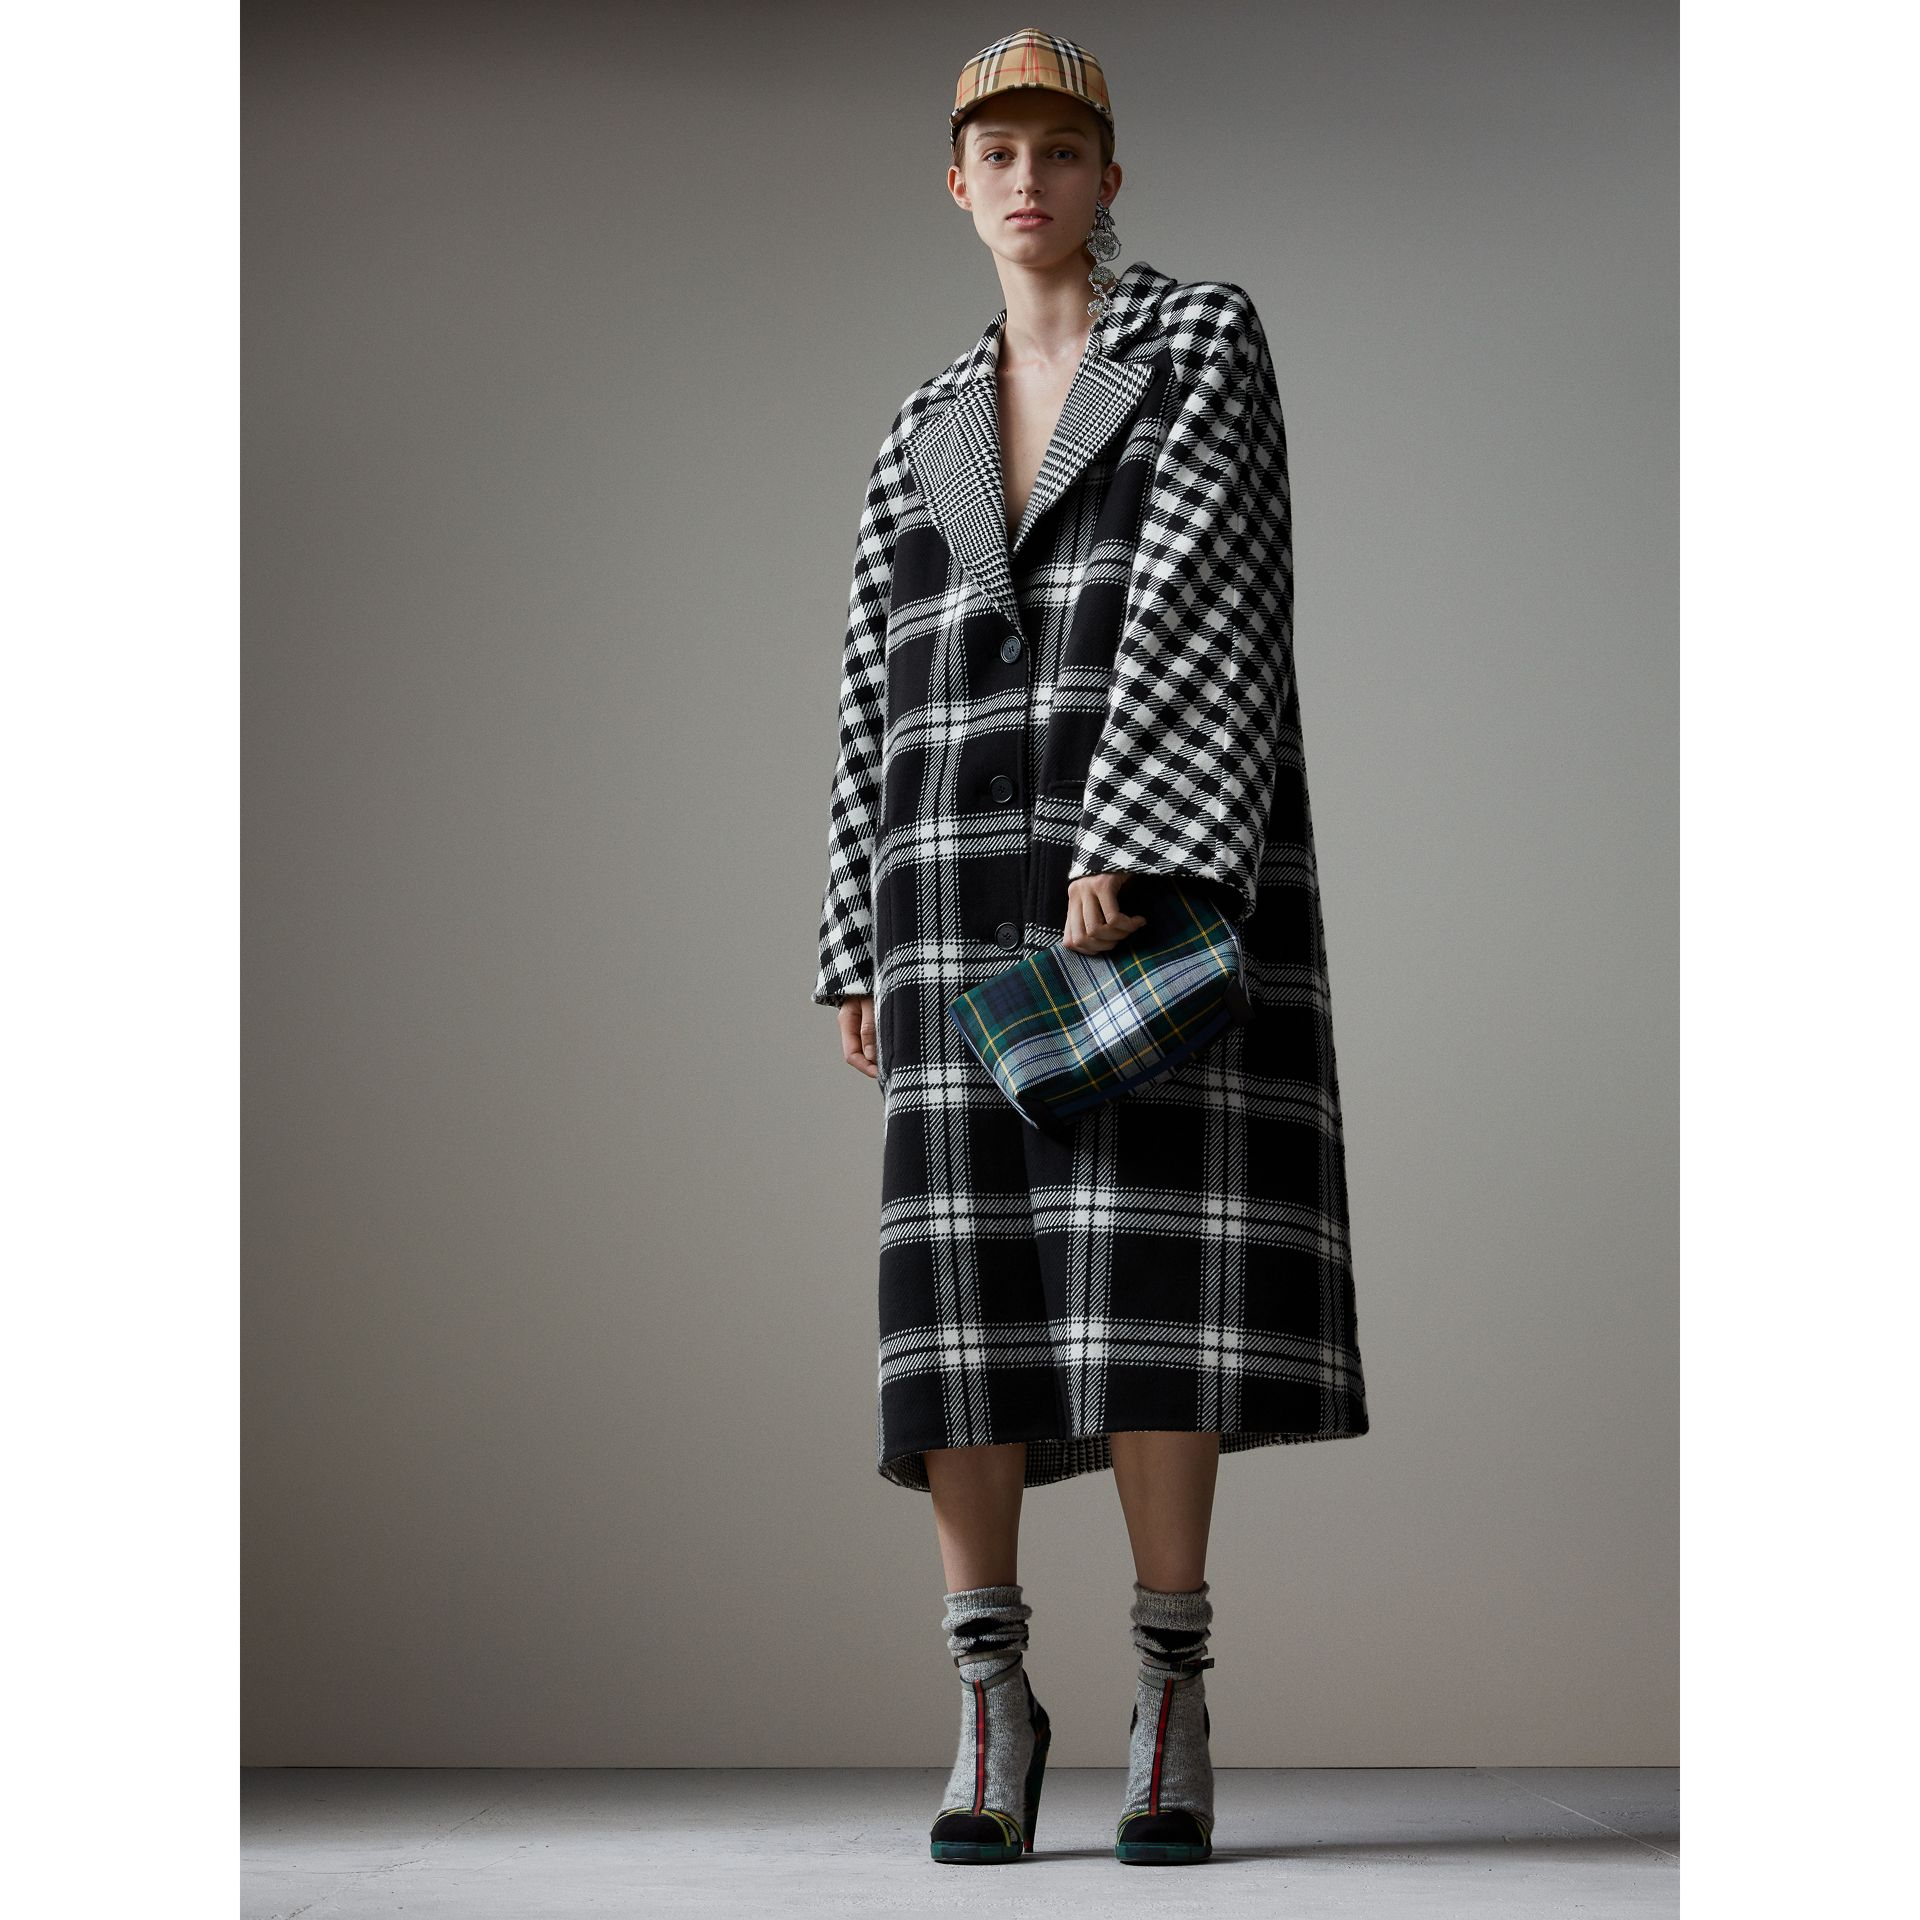 Reversible Multi-check Wool Cashmere Coat in Black/white - Women | Burberry Singapore - gallery image 1